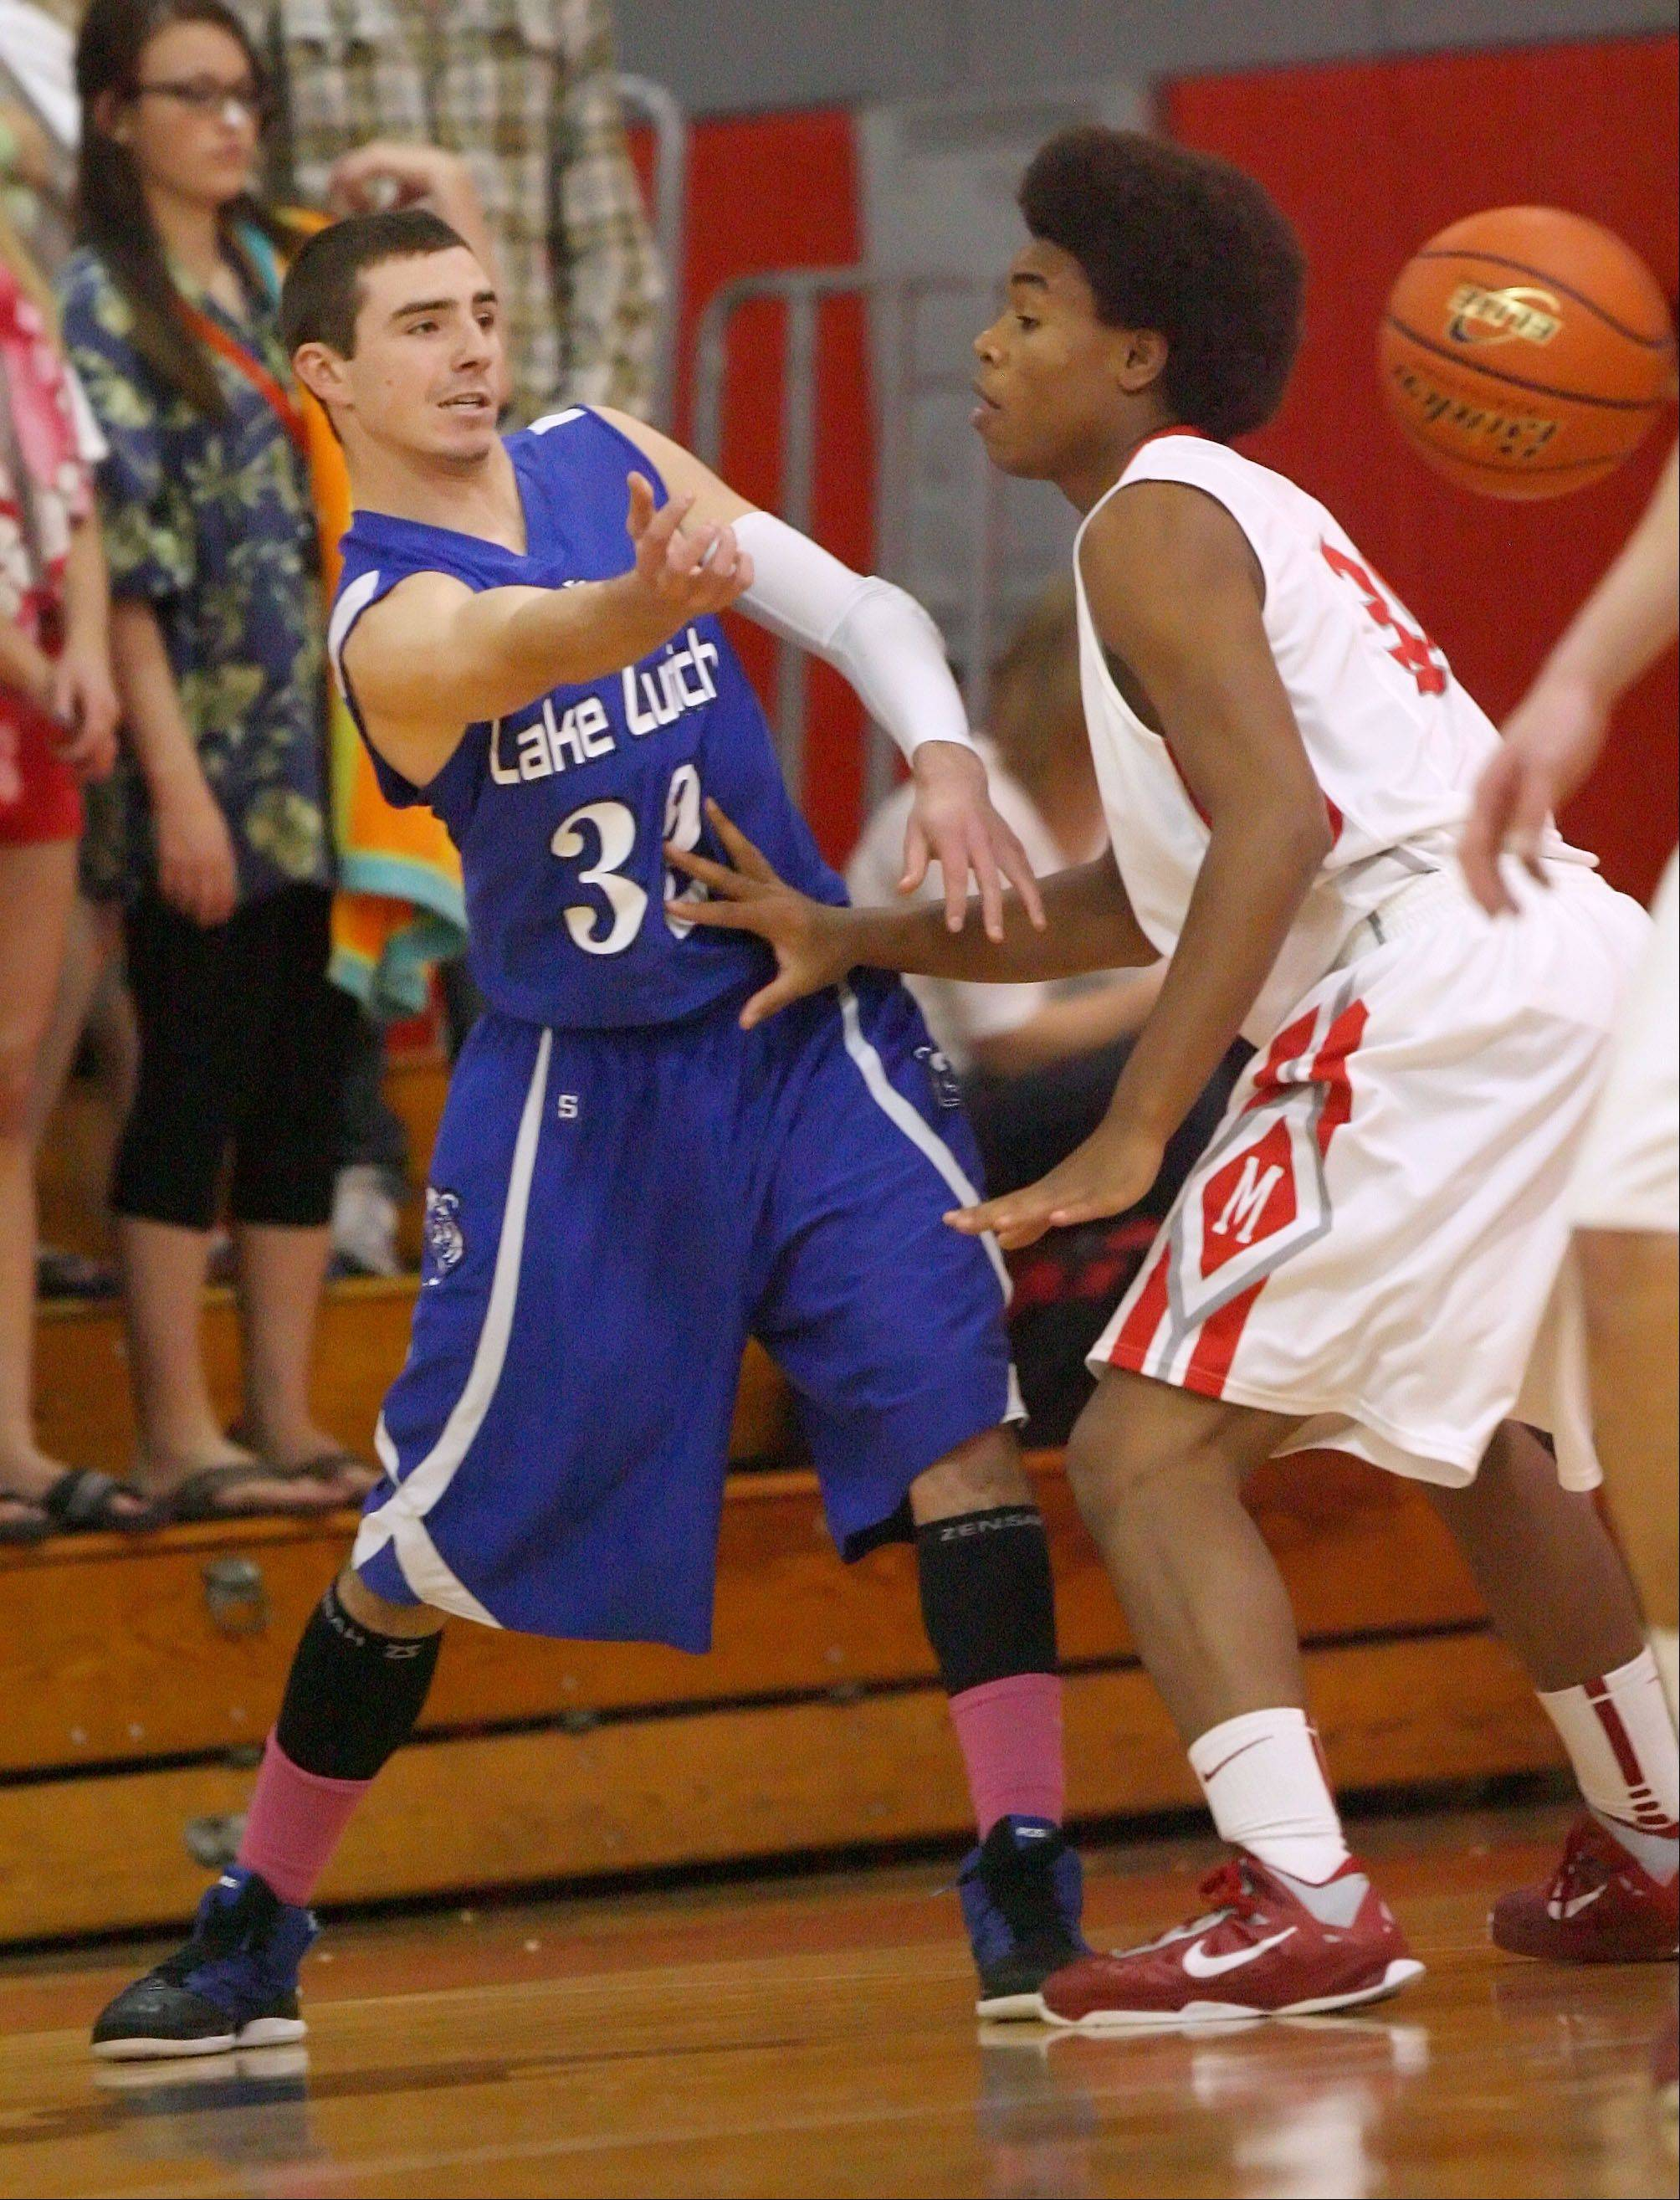 Lake Zurich's John Repplinger, left, dishes off the ball around Mundelein's Cliff Dinigan.